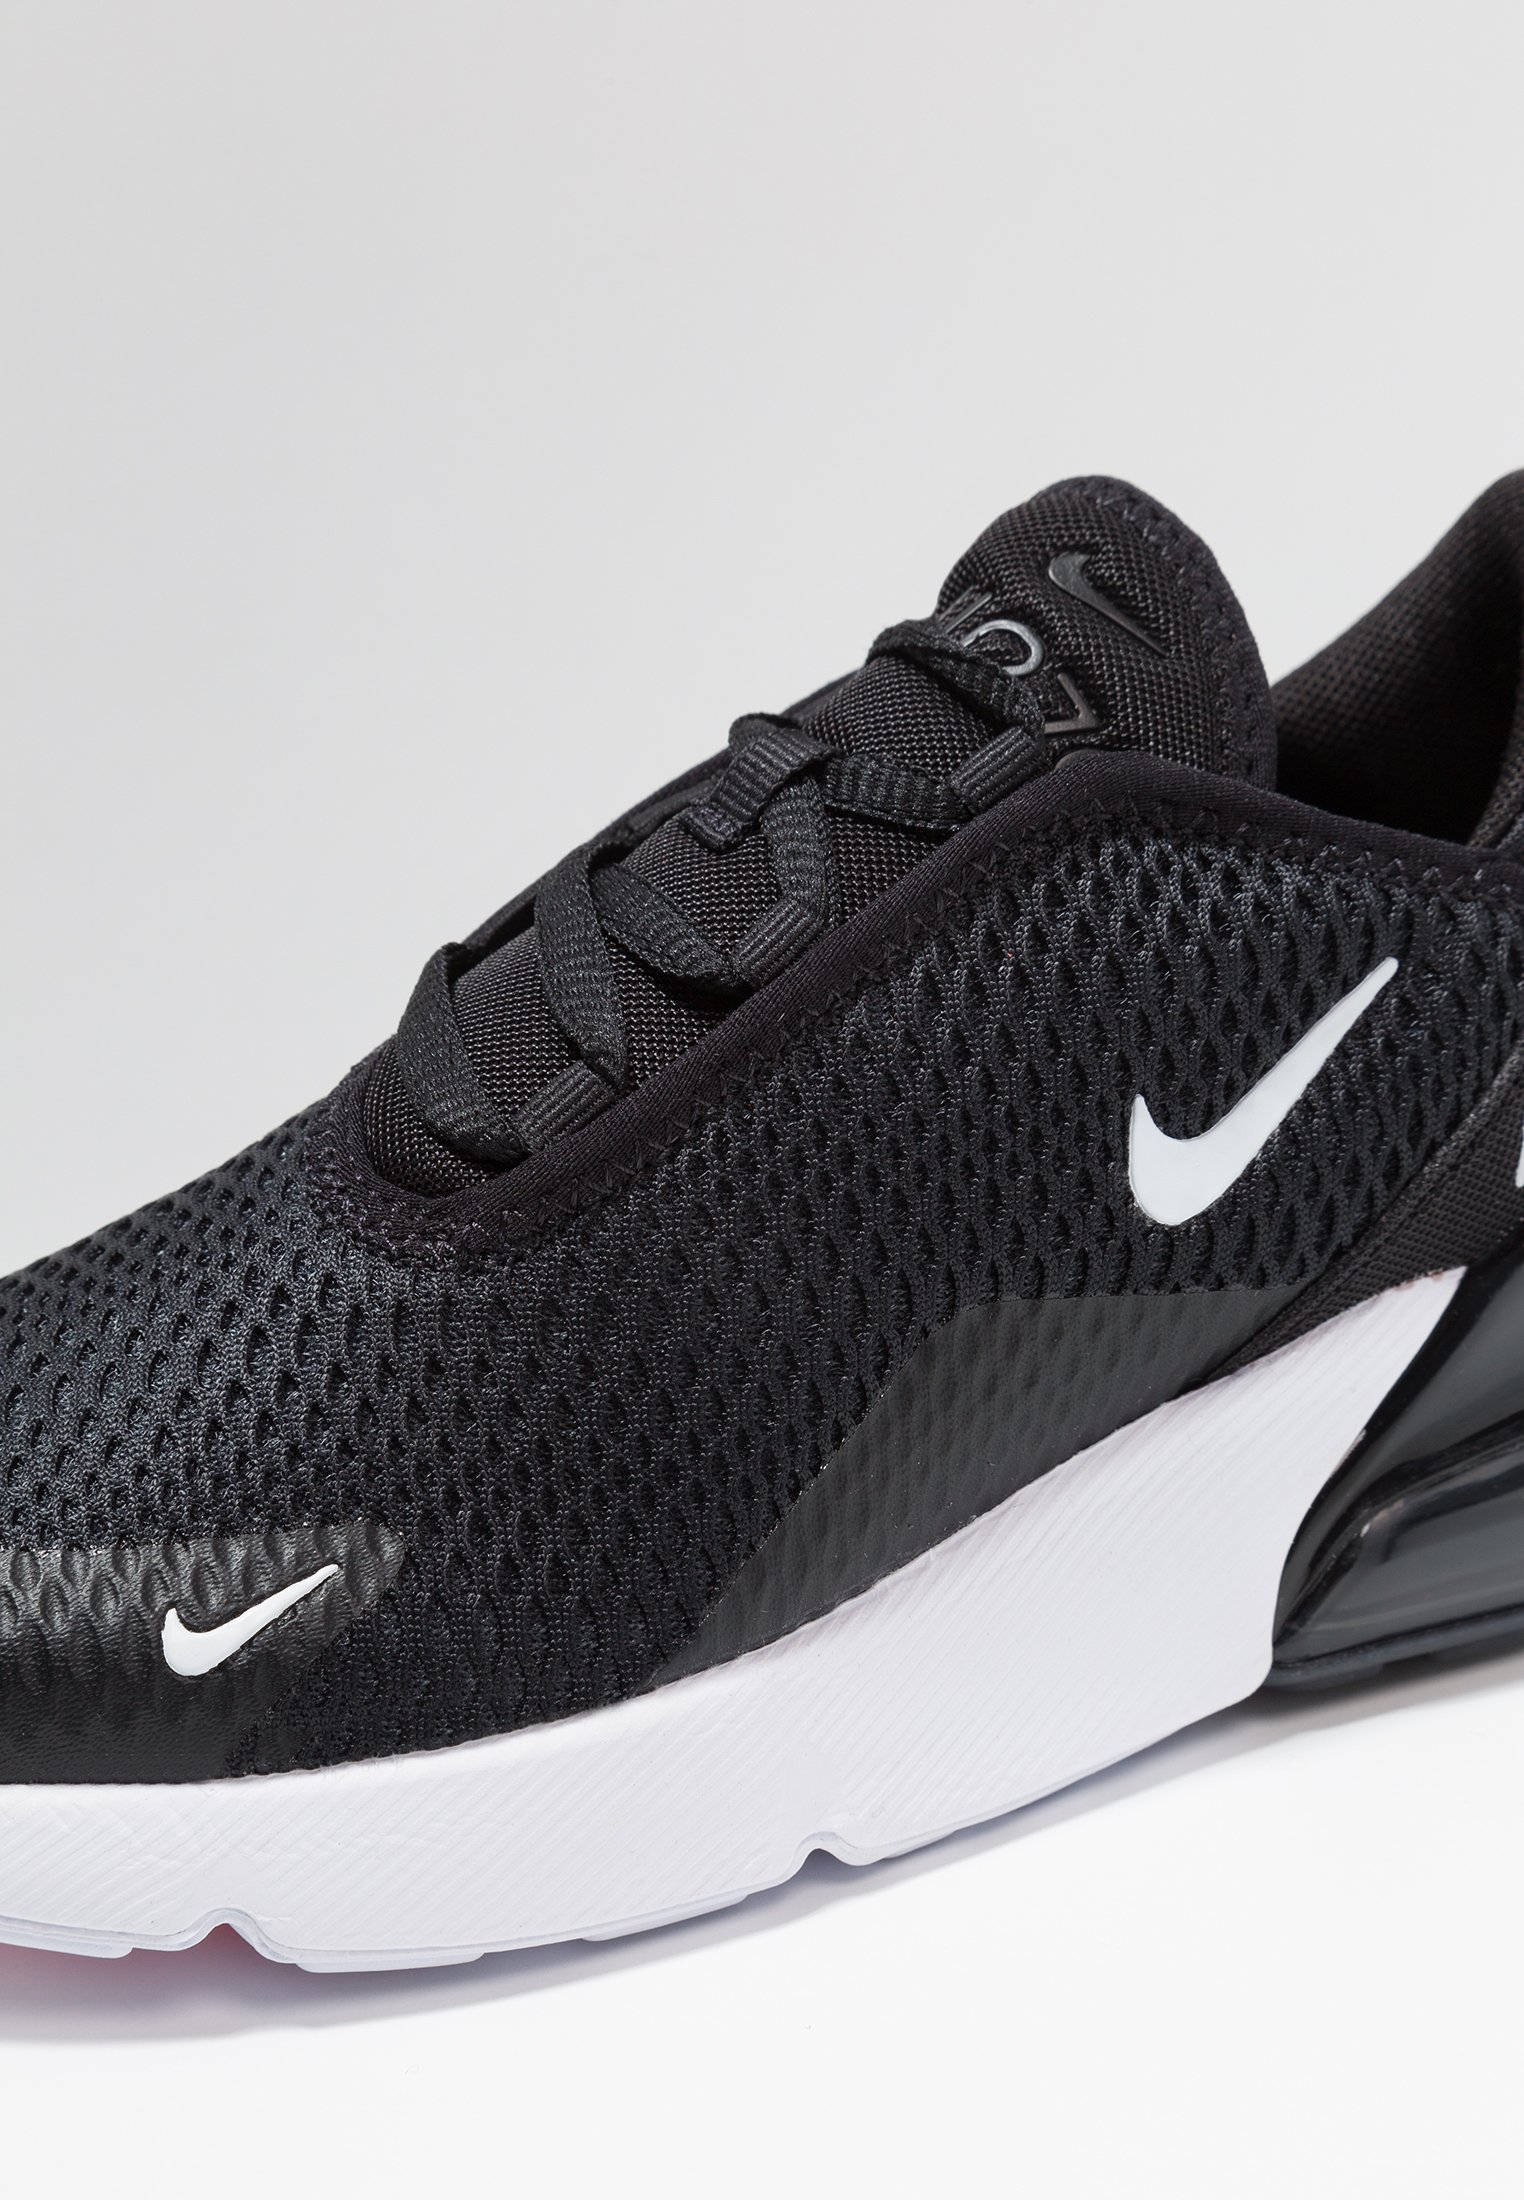 AIR MAX 270 Sneakers blackanthracitewhite